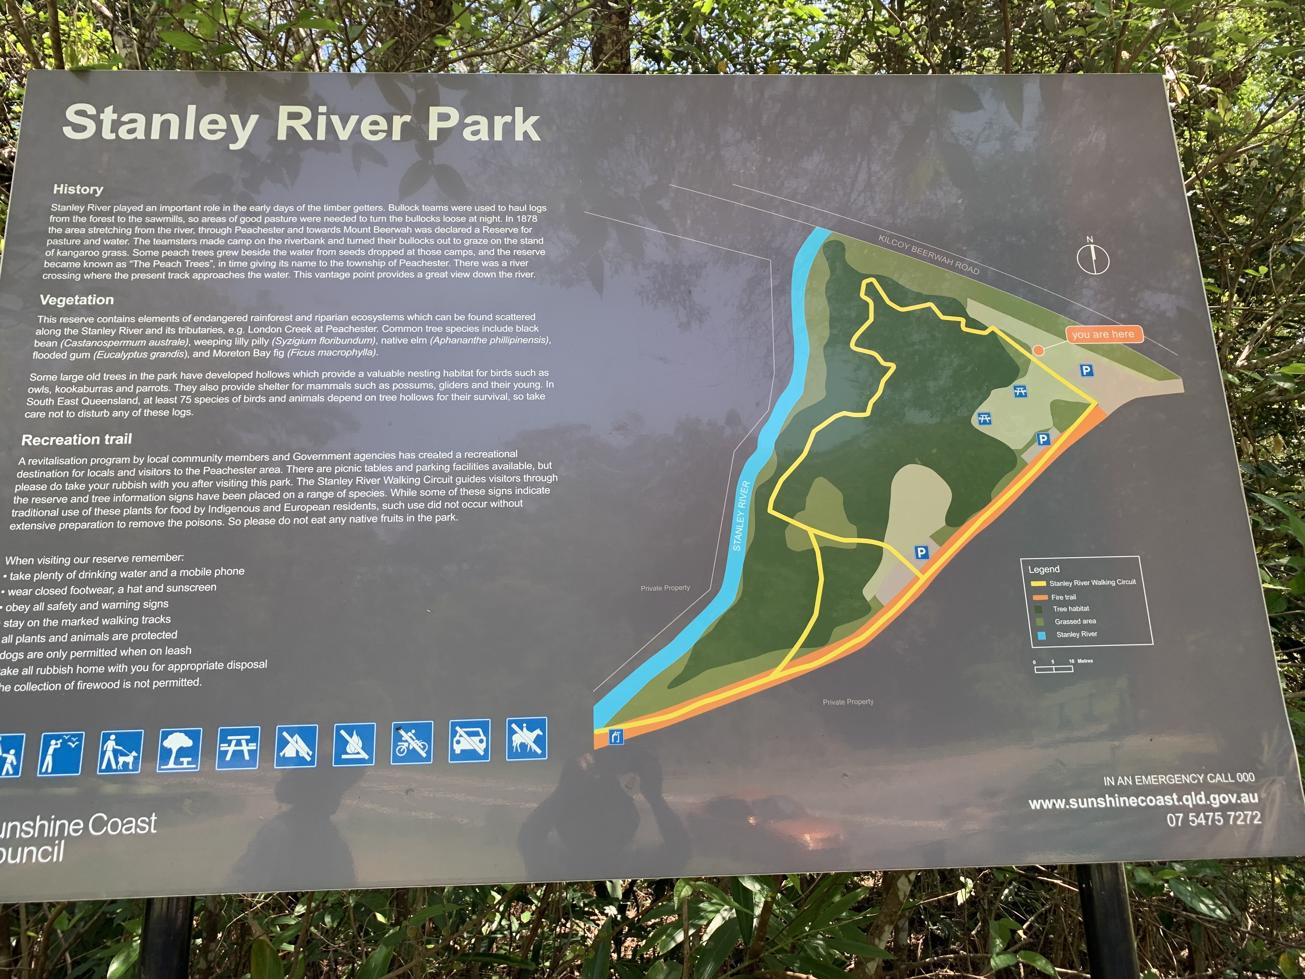 Trail Image for Stanley River Park Circuit